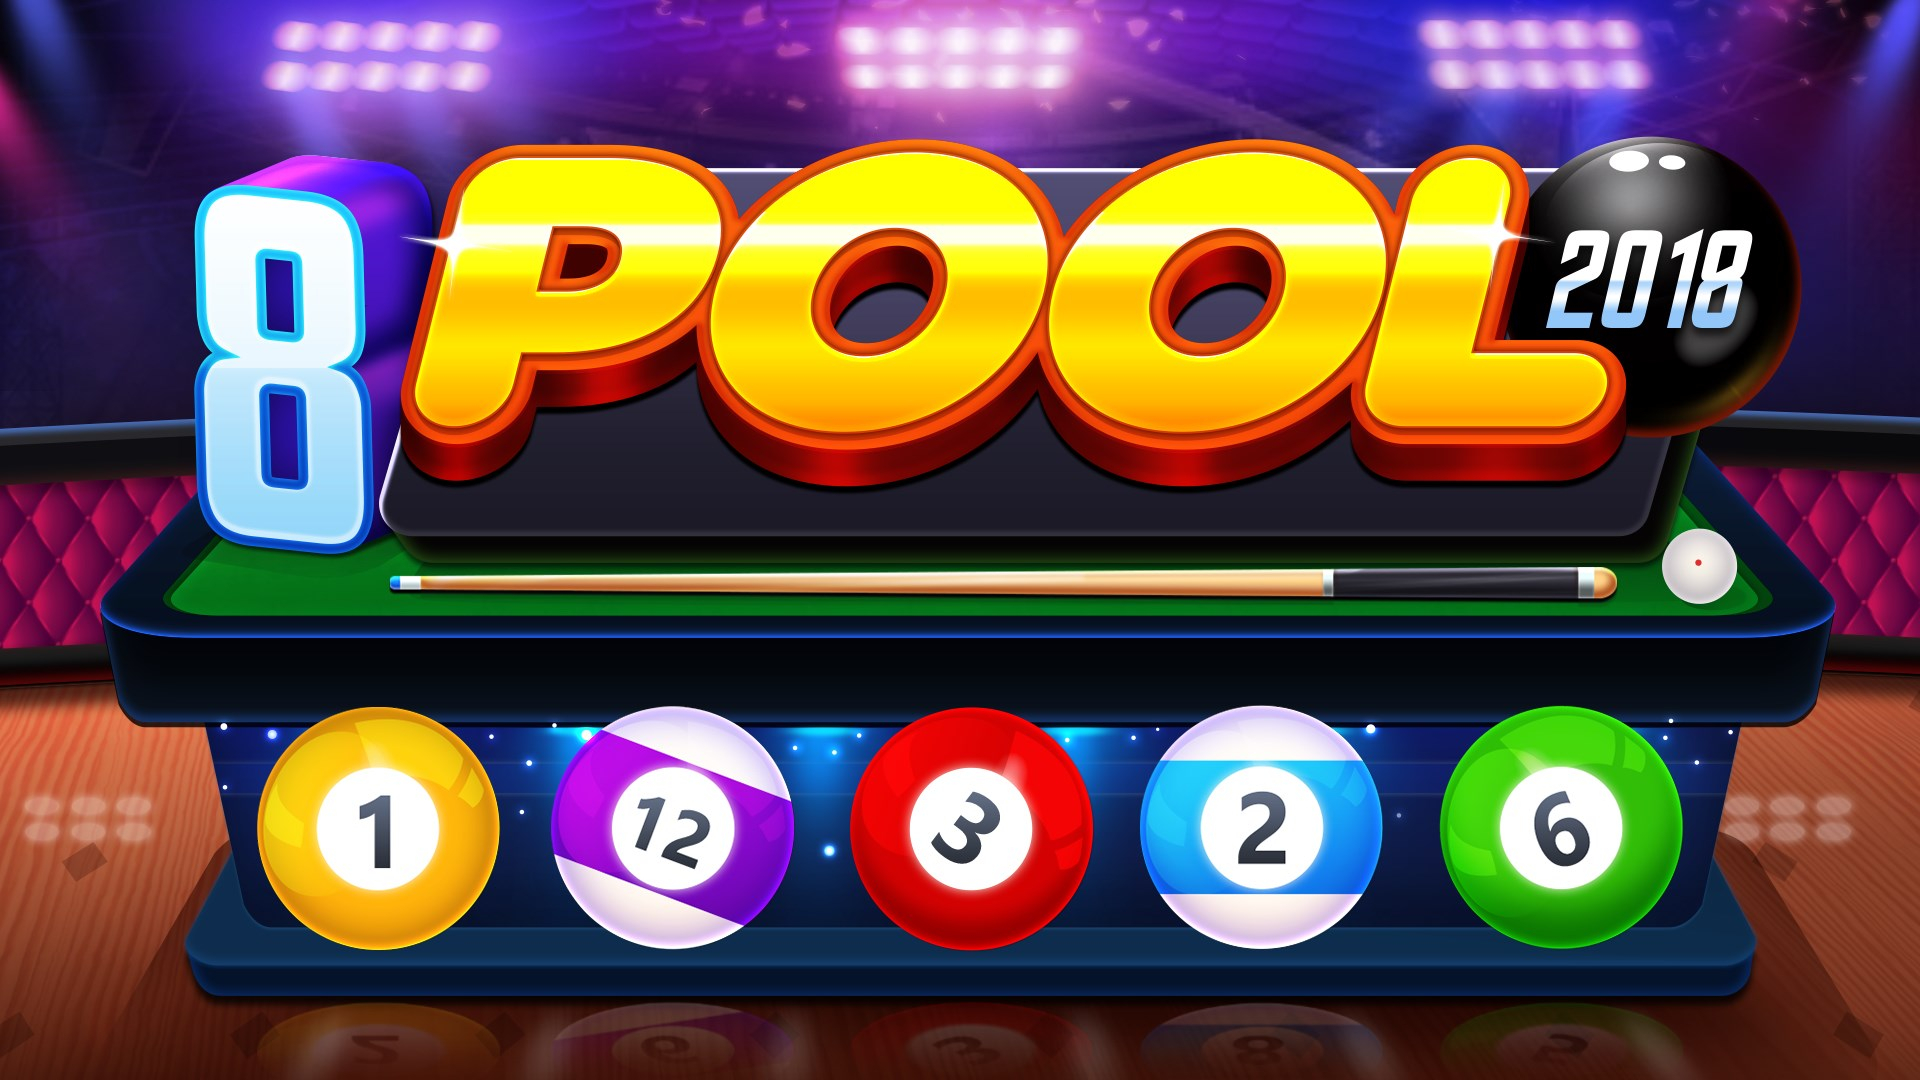 Download the Most Famous 8 Ball Pool Apk Mod With Premium Features For Free